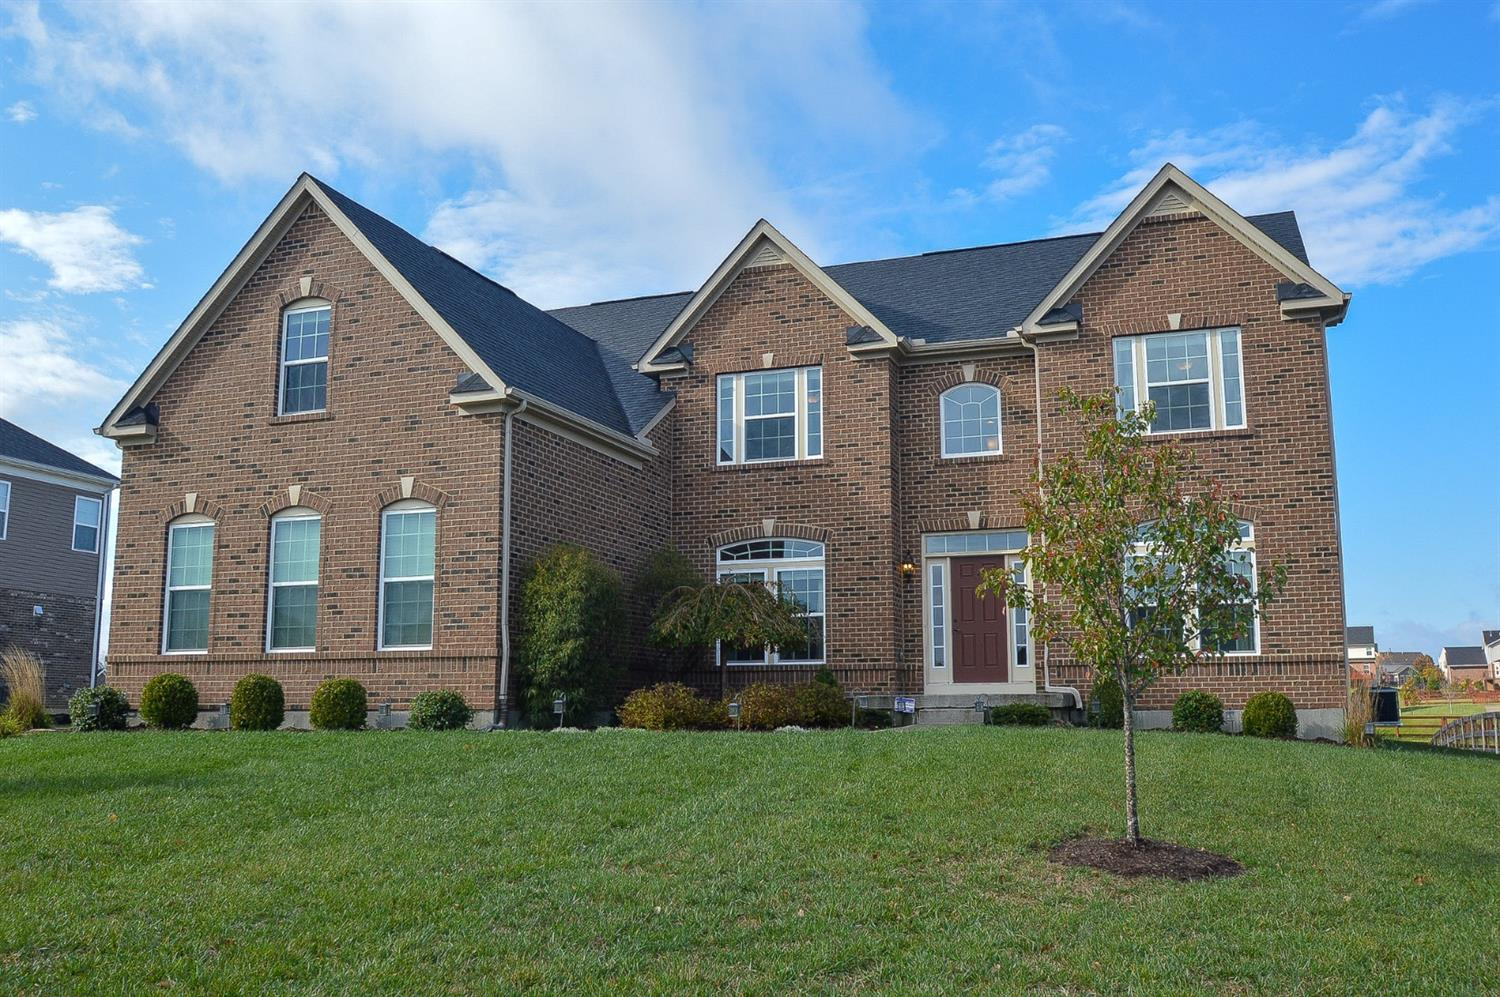 Property for sale at 6807 Sugarberry Knoll, Liberty Twp,  Ohio 45011